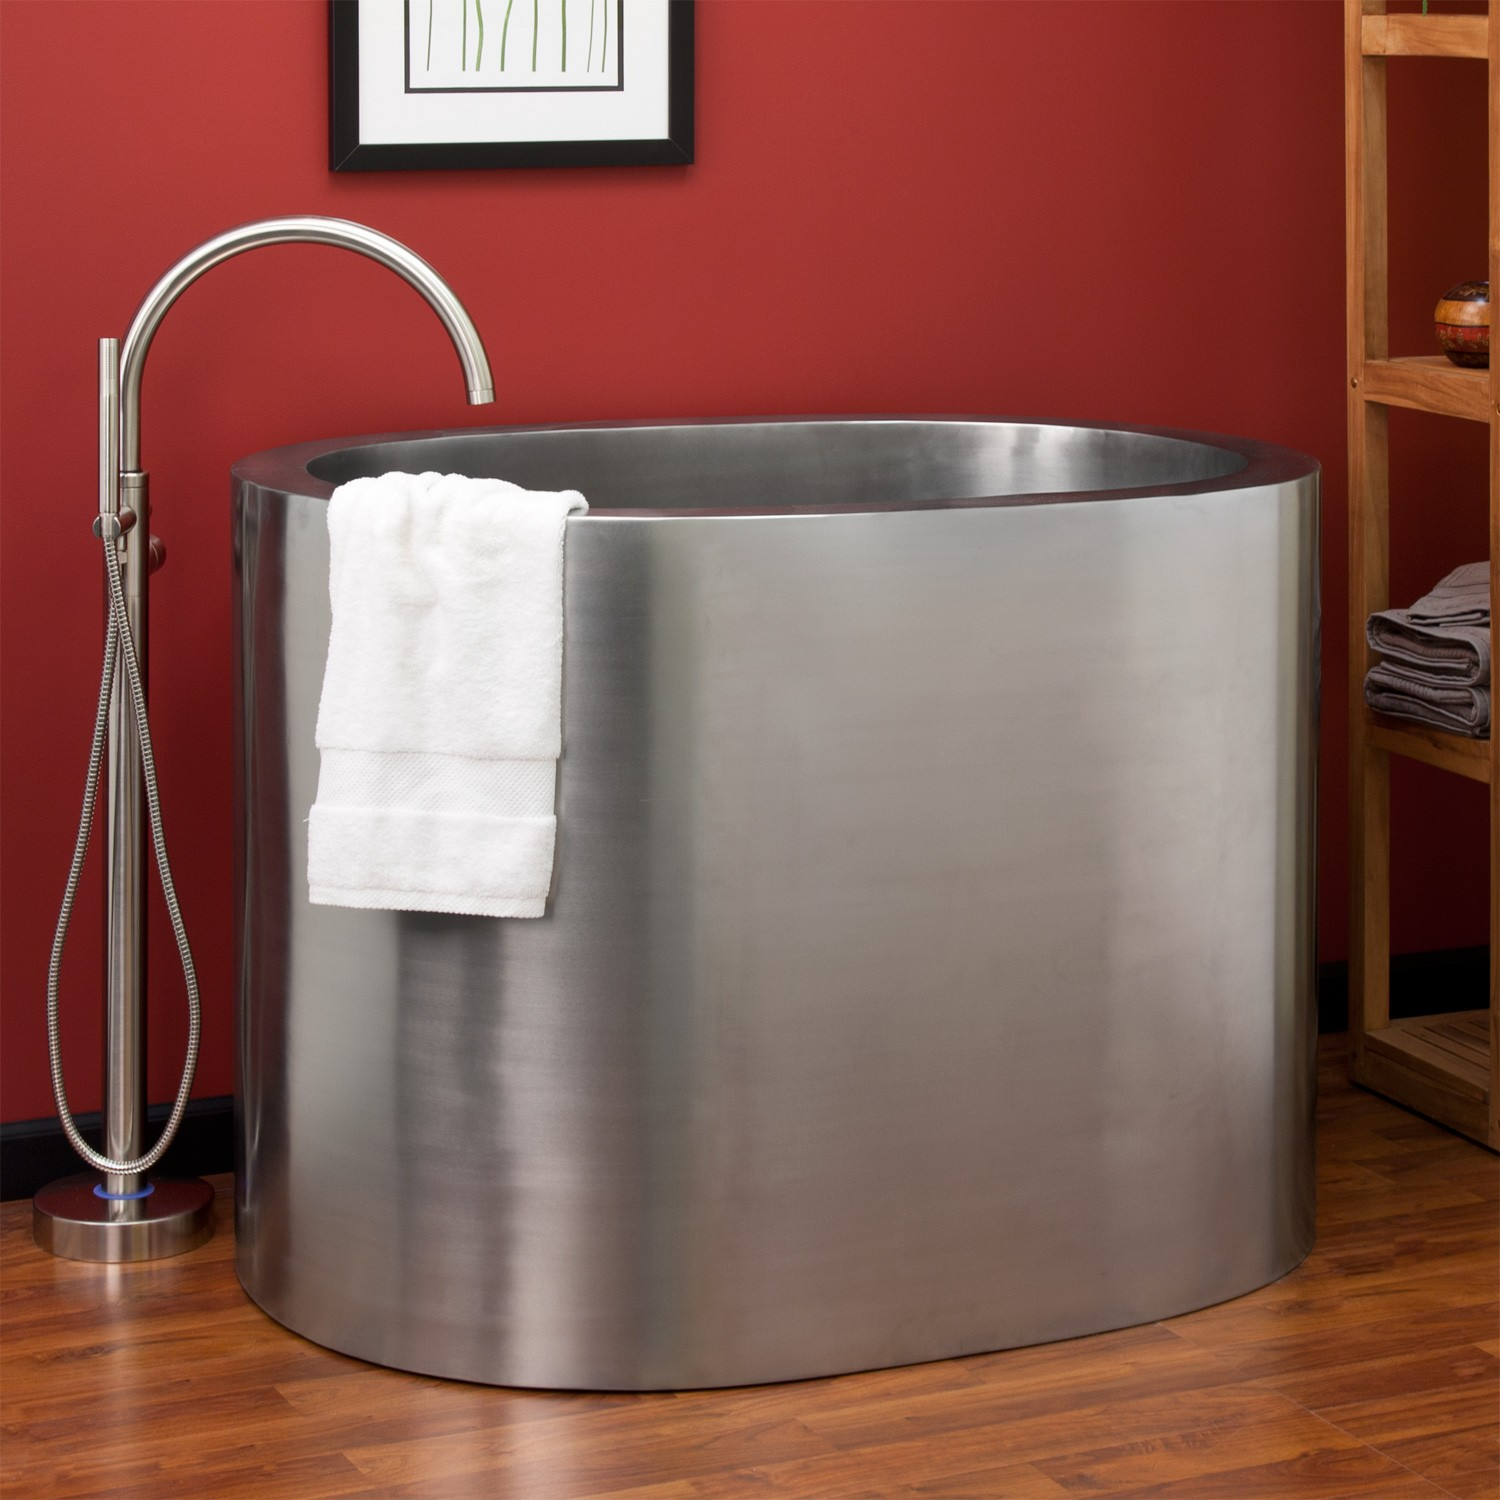 Japanese Style Soaking Tub Give Asian Accent To Your Bathroom HomesFeed